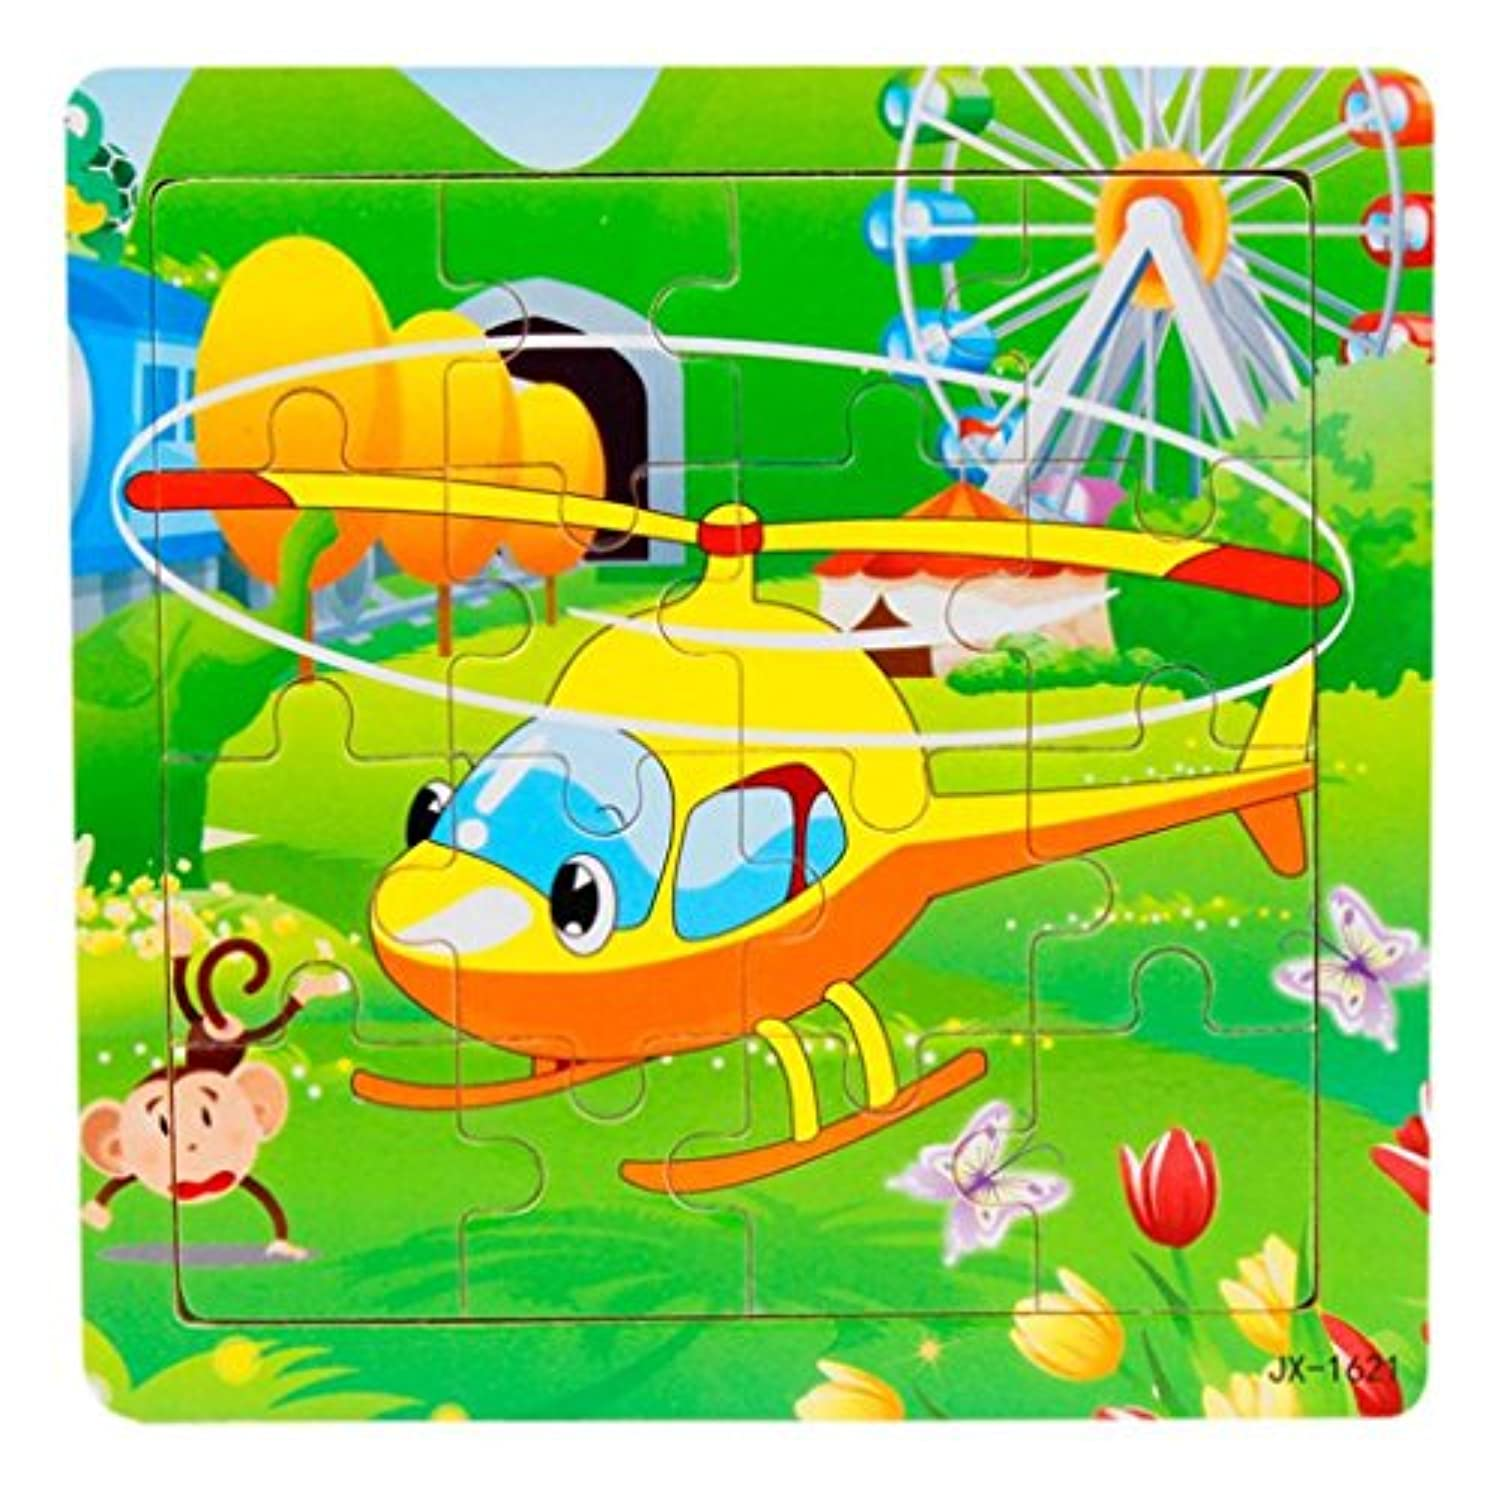 elevin ( TM ) 16 Piece Baby Kid Child Wooden Jigsaw Toys For Kids教育と学習Developmentalパズルゲーム玩具ギフト